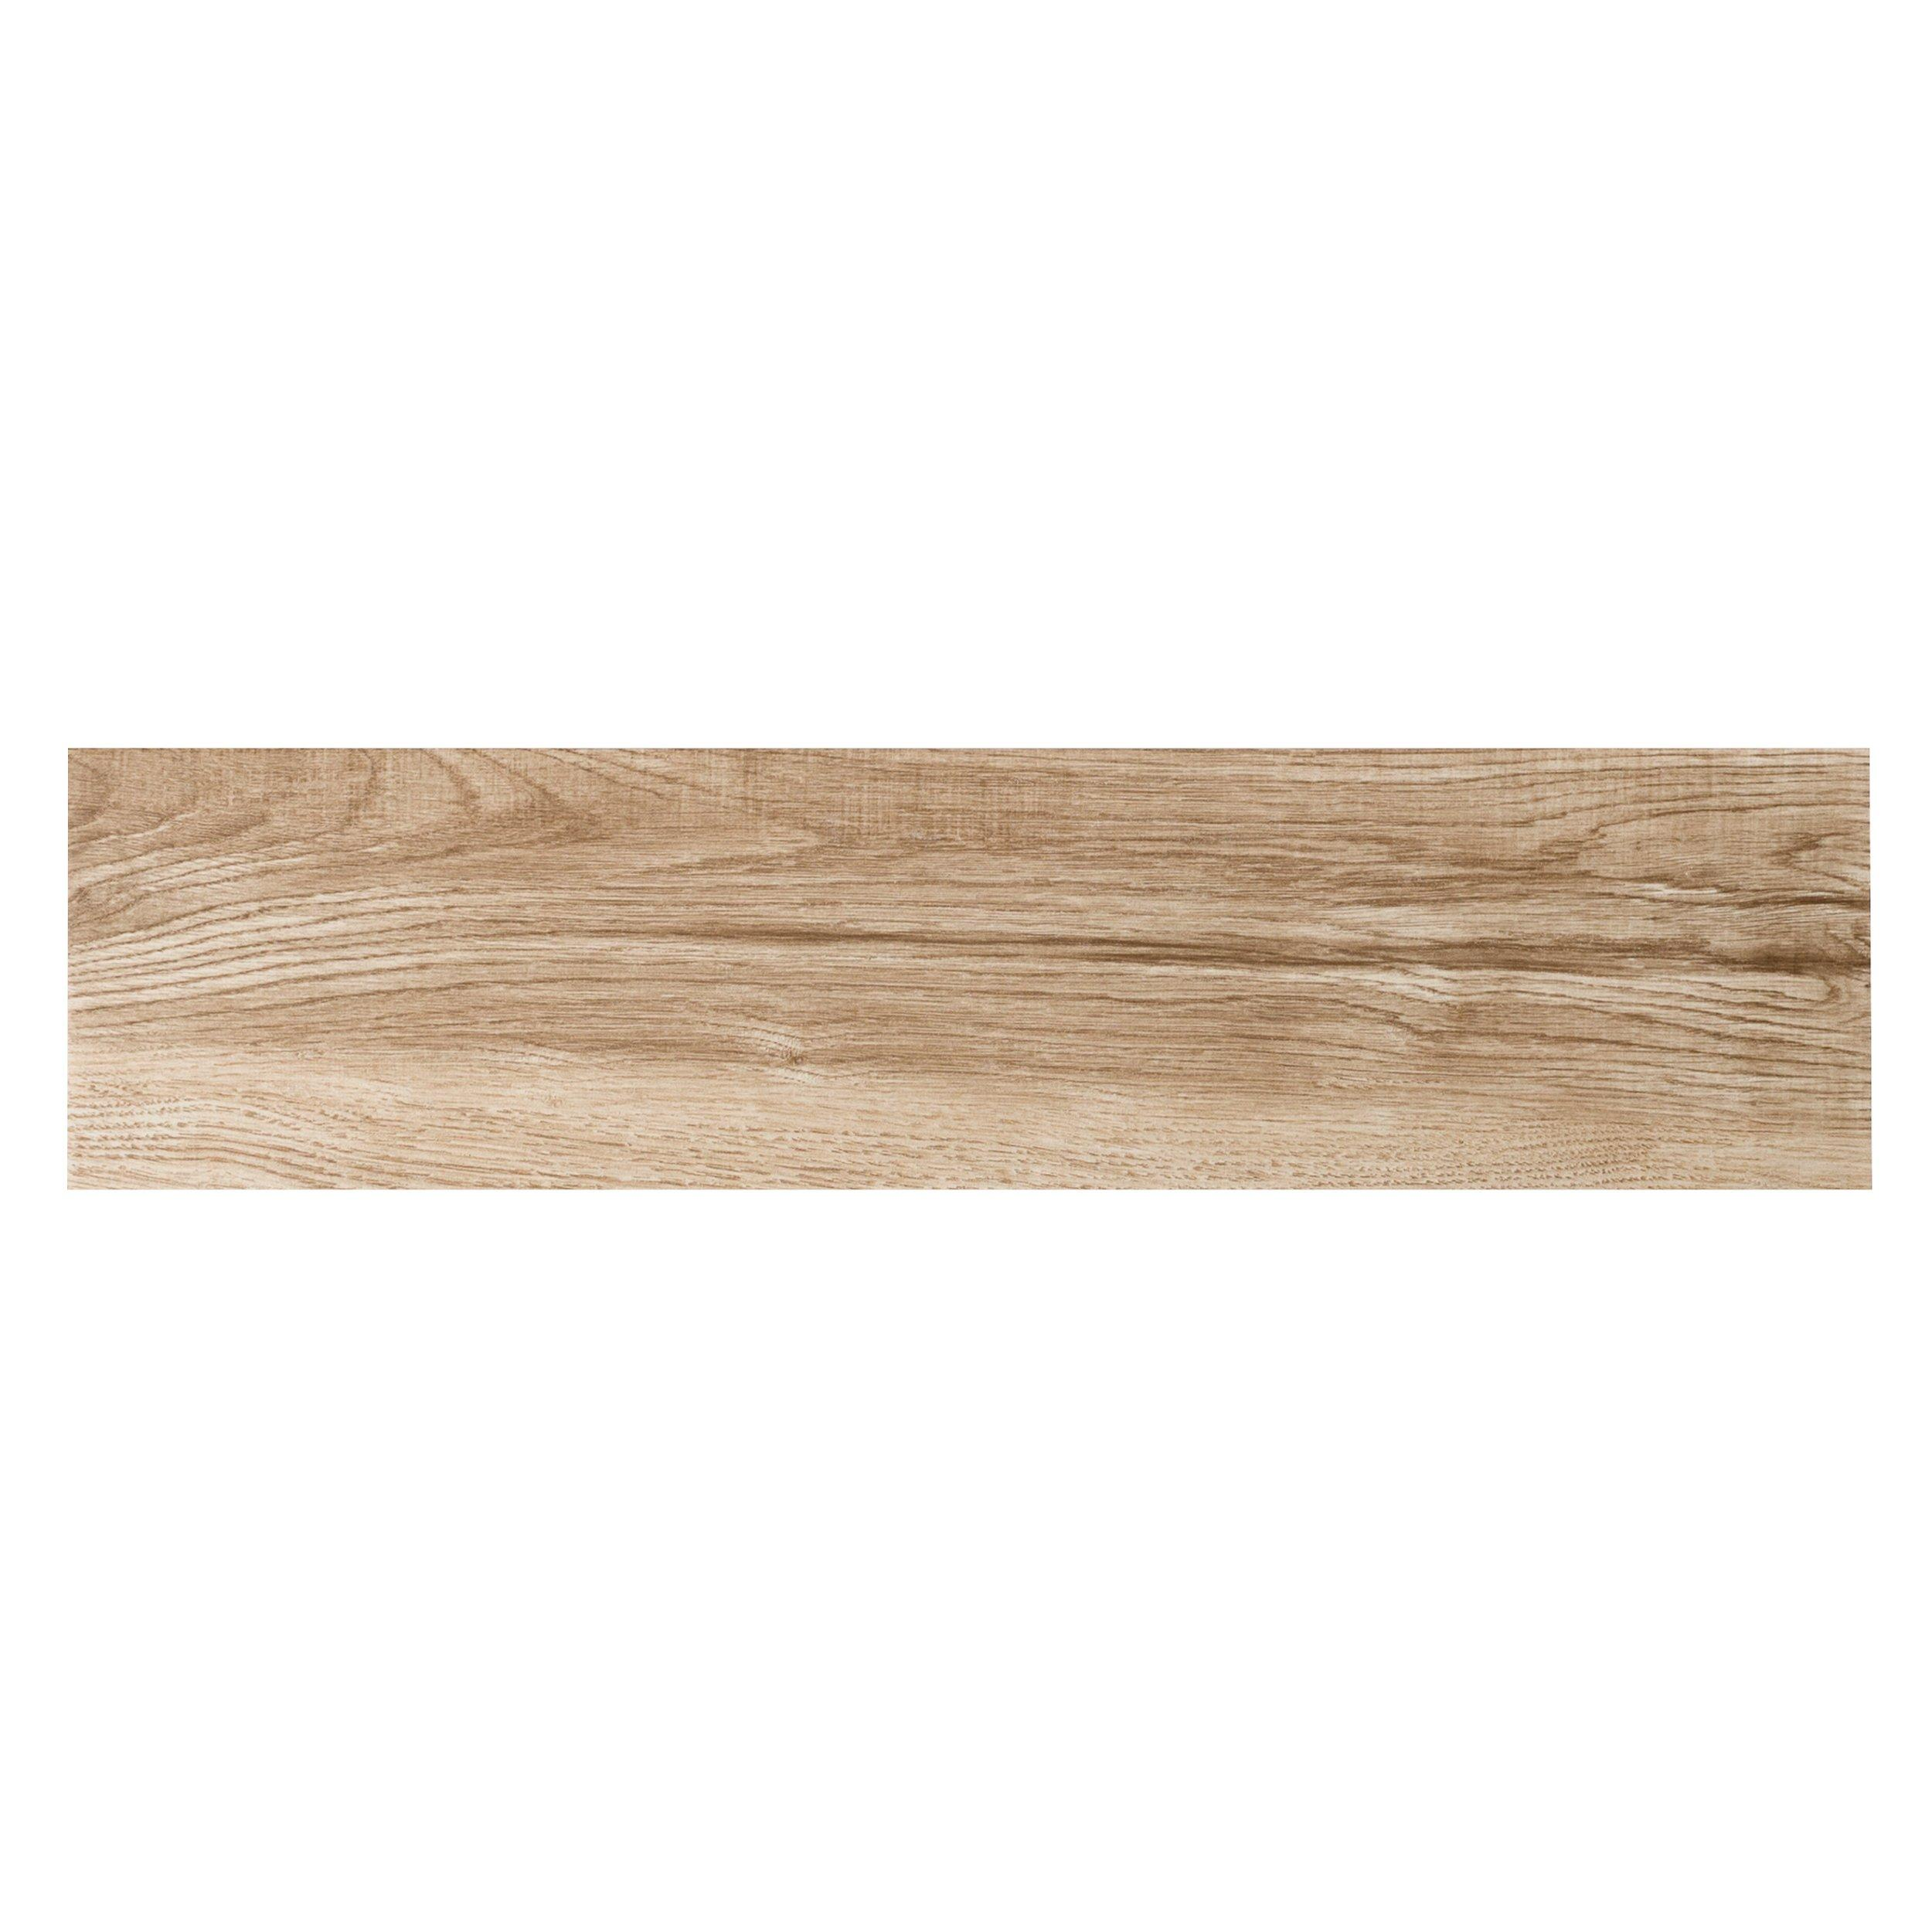 Kingston oak wood plank porcelain tile 6in x 24in 100429778 kingston oak wood plank porcelain tile 6in x 24in 100429778 floor and decor dailygadgetfo Image collections